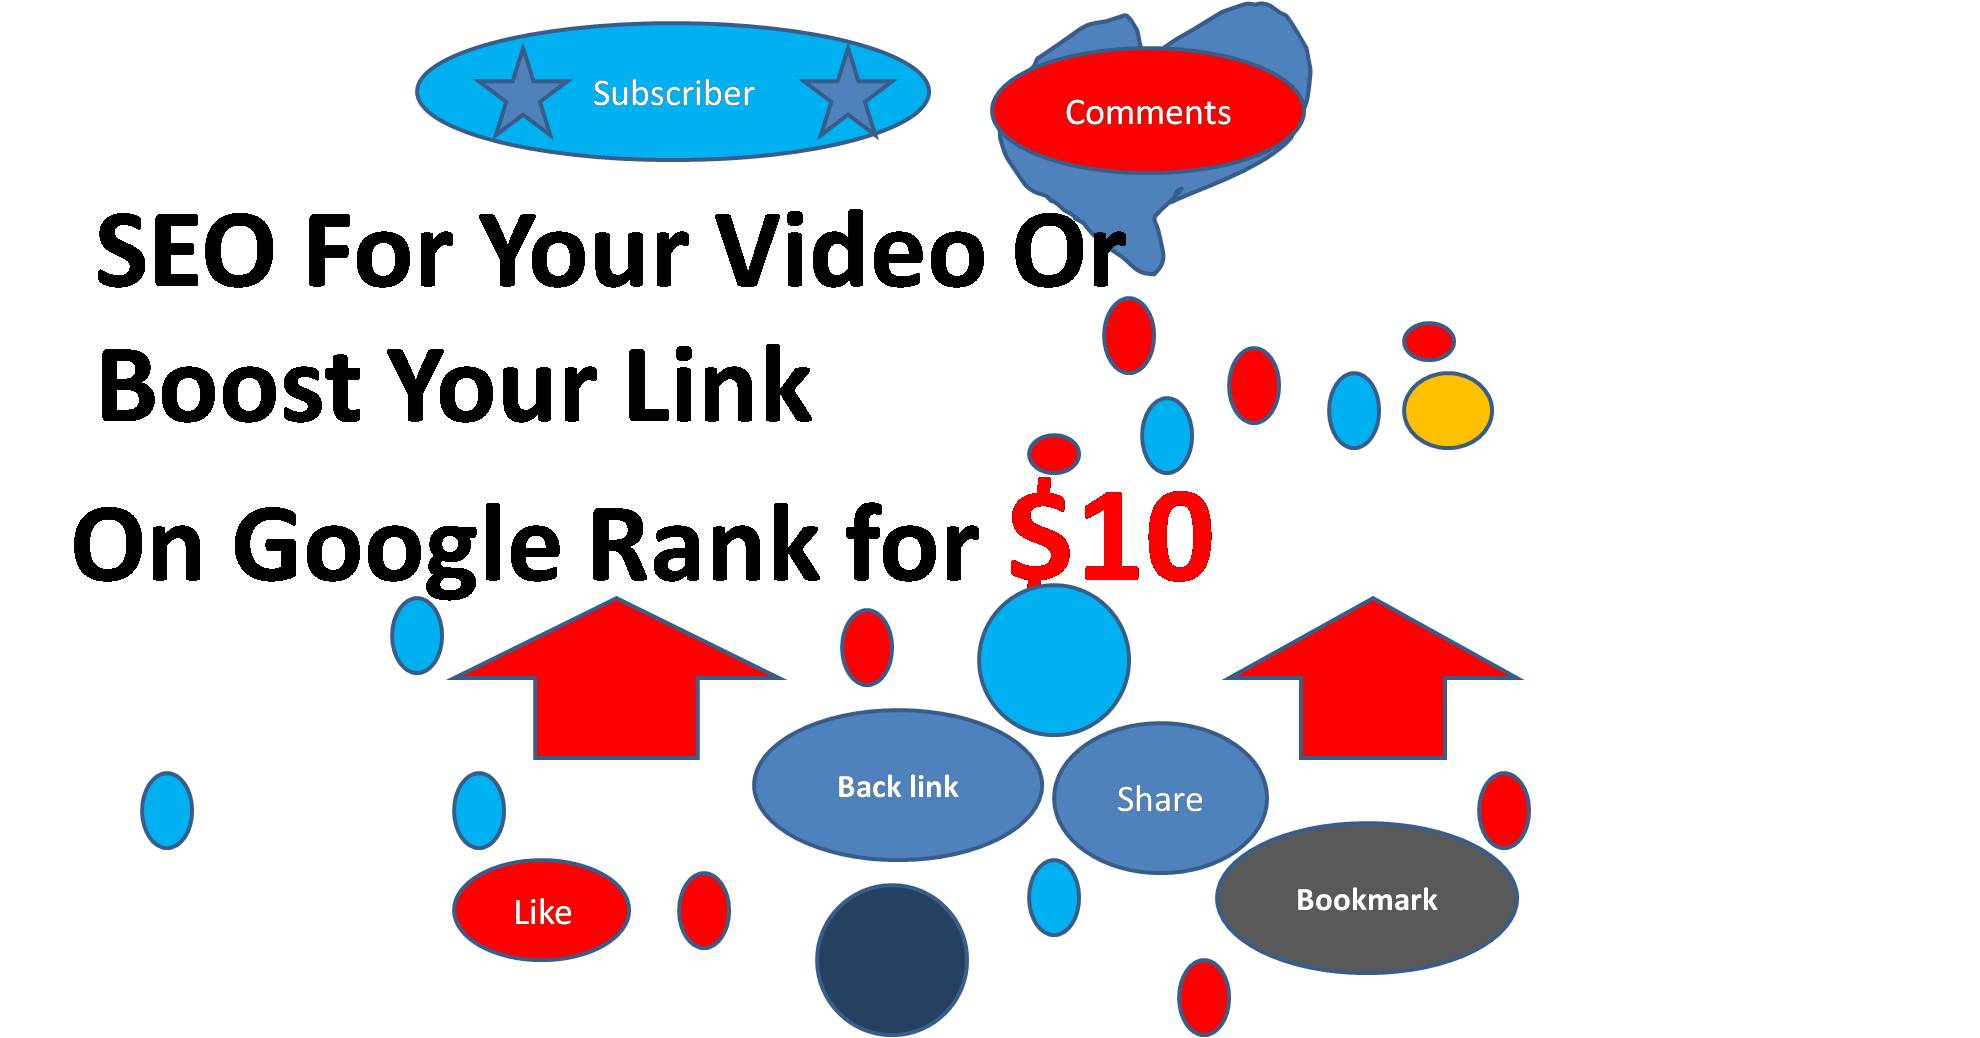 Promote Youtube Video To REAL Audience Encouraging Views And Traffic